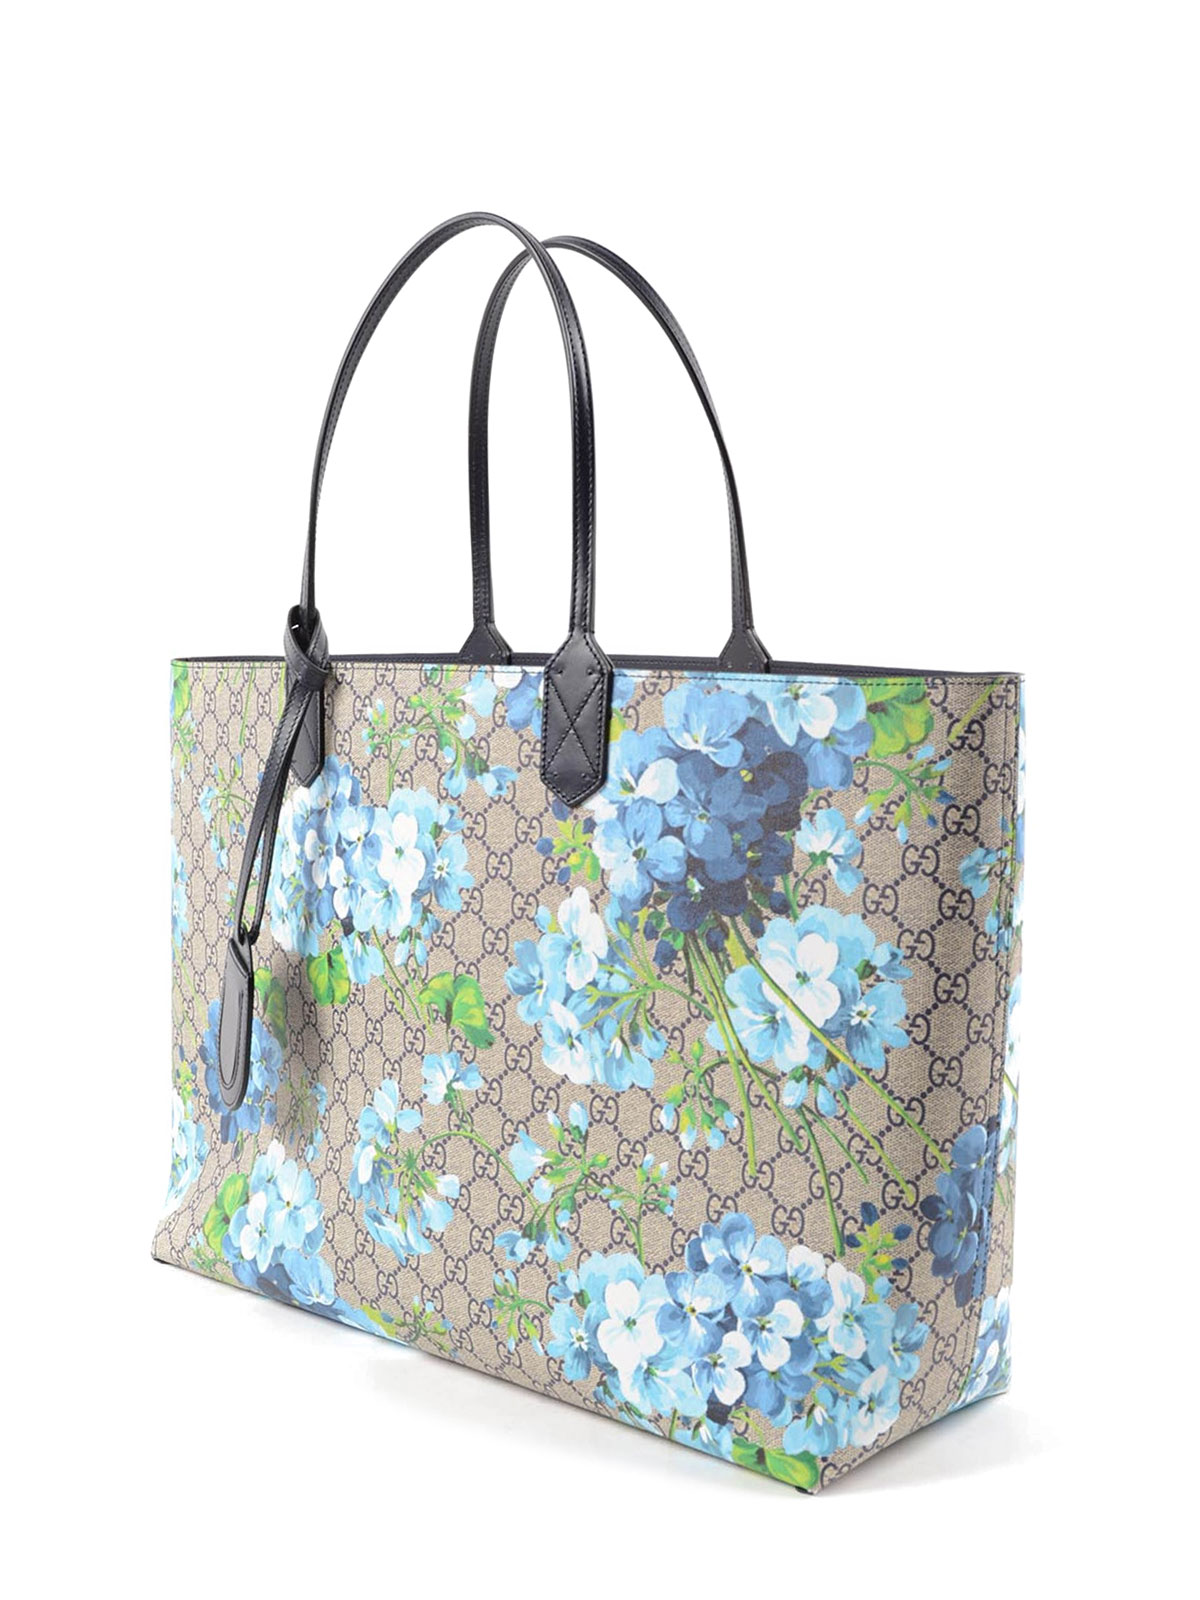 33fc87adc84 Gucci - Reversible GG Blooms leather bag - totes bags - 368571 CU71X ...